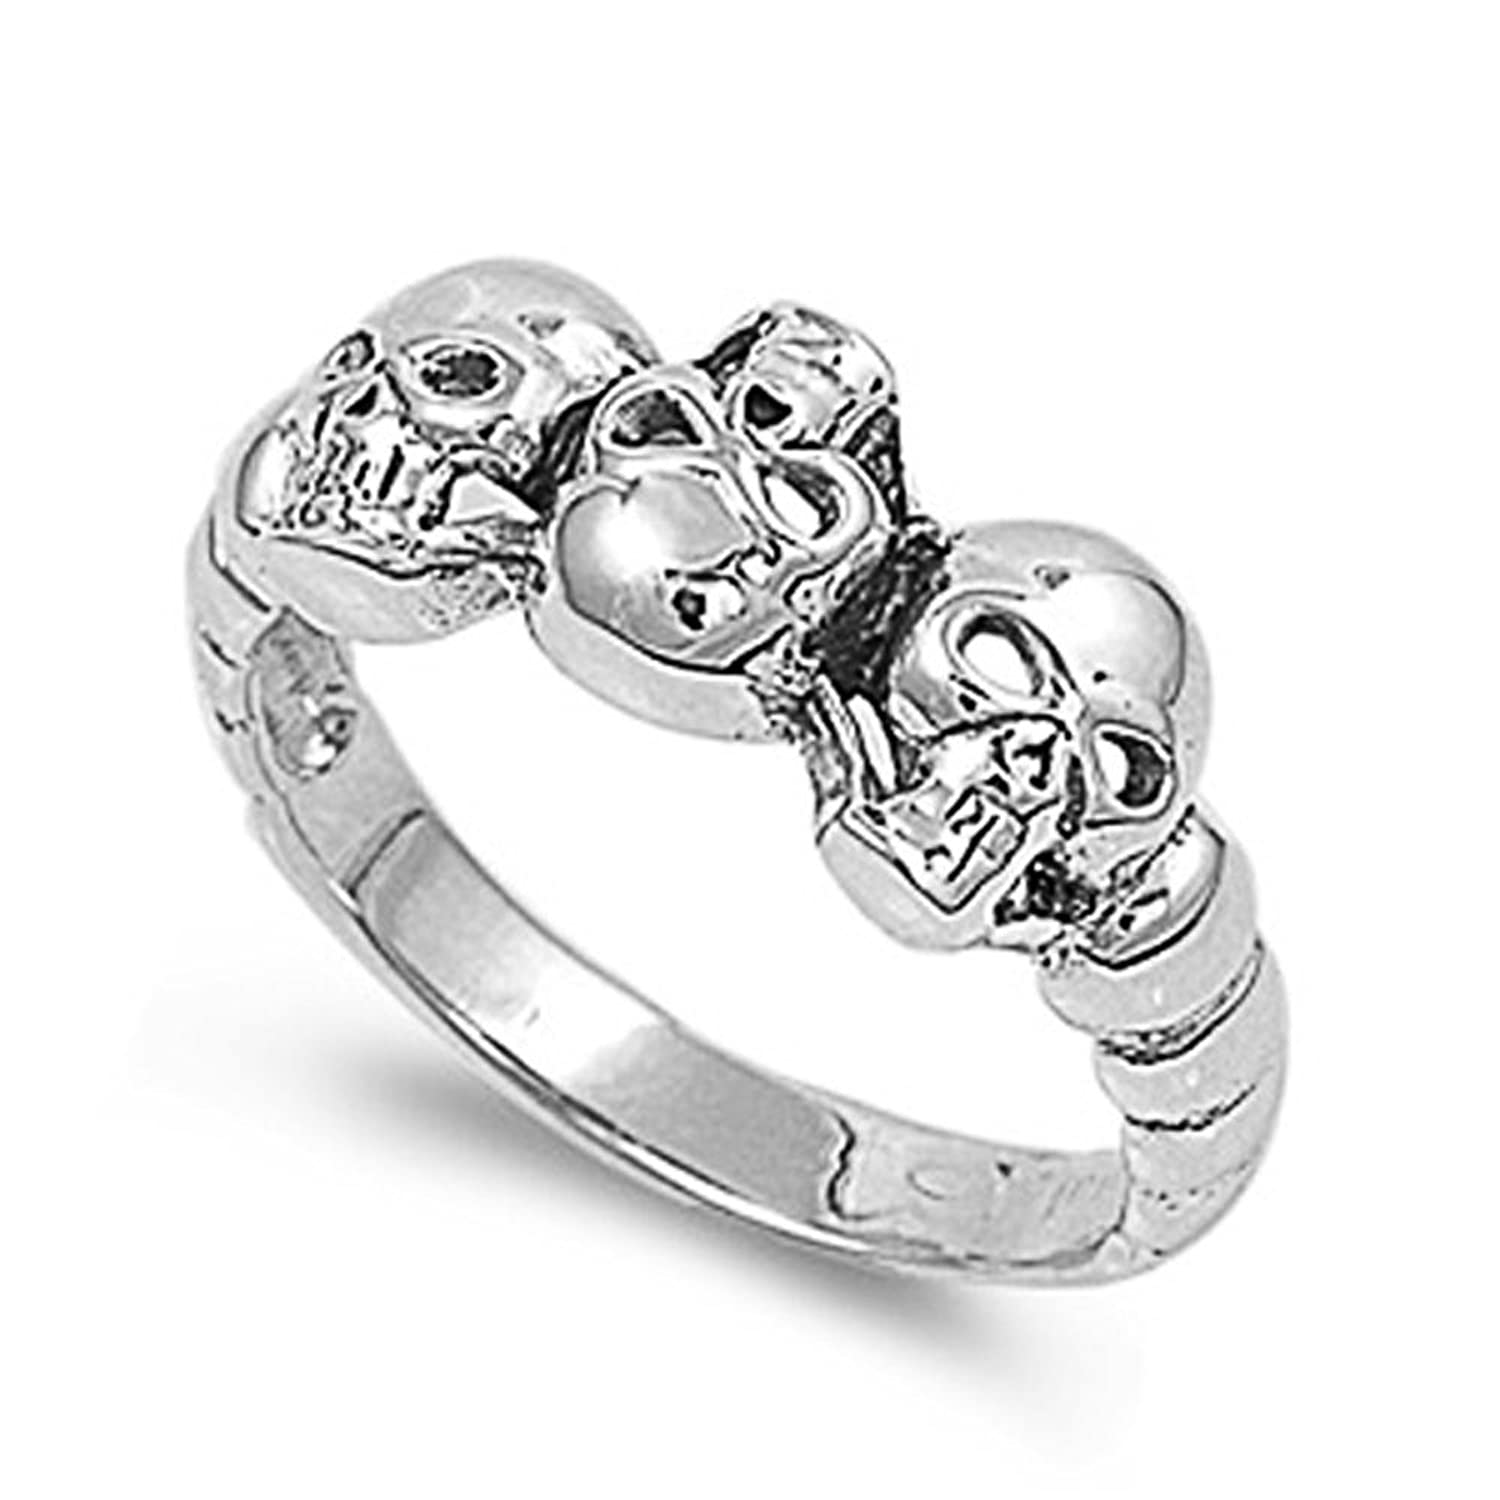 ring lyst stella ippolita in gallery bands multi jewelry sterling normal silver multiband band diamond product